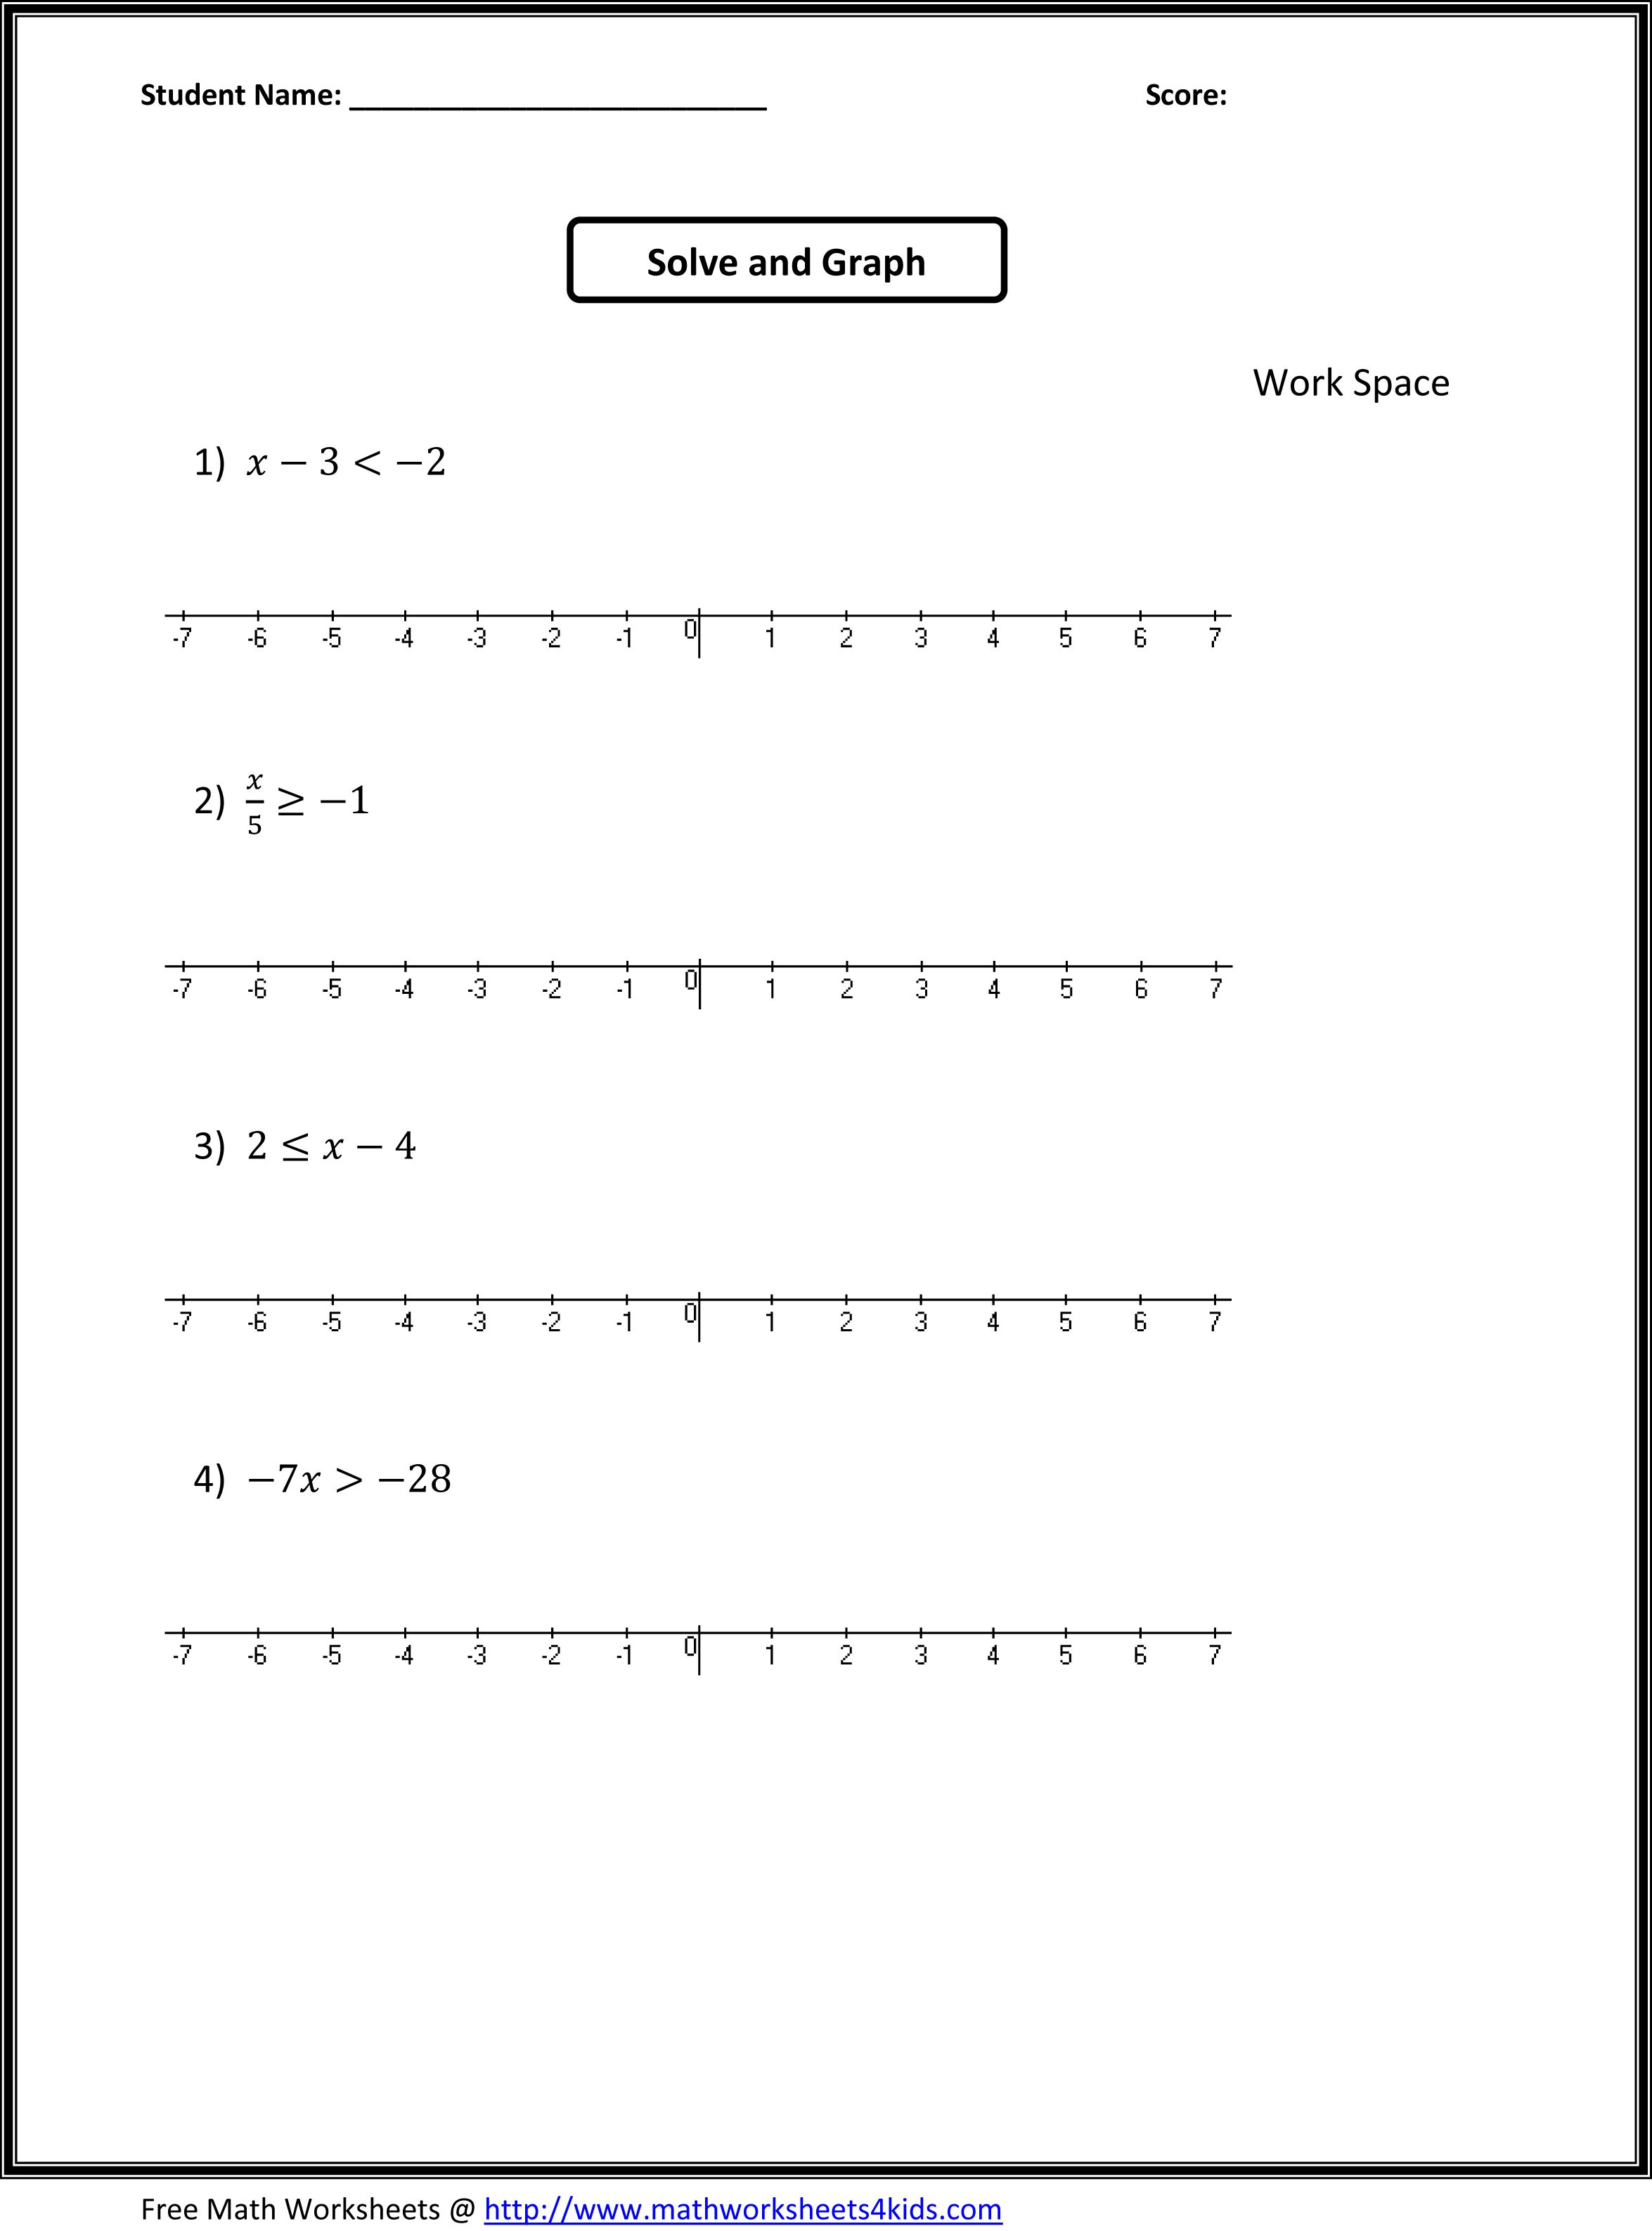 Printables Math Worksheets For 7th Graders 7th grade math worksheets value absolute algebra worksheets